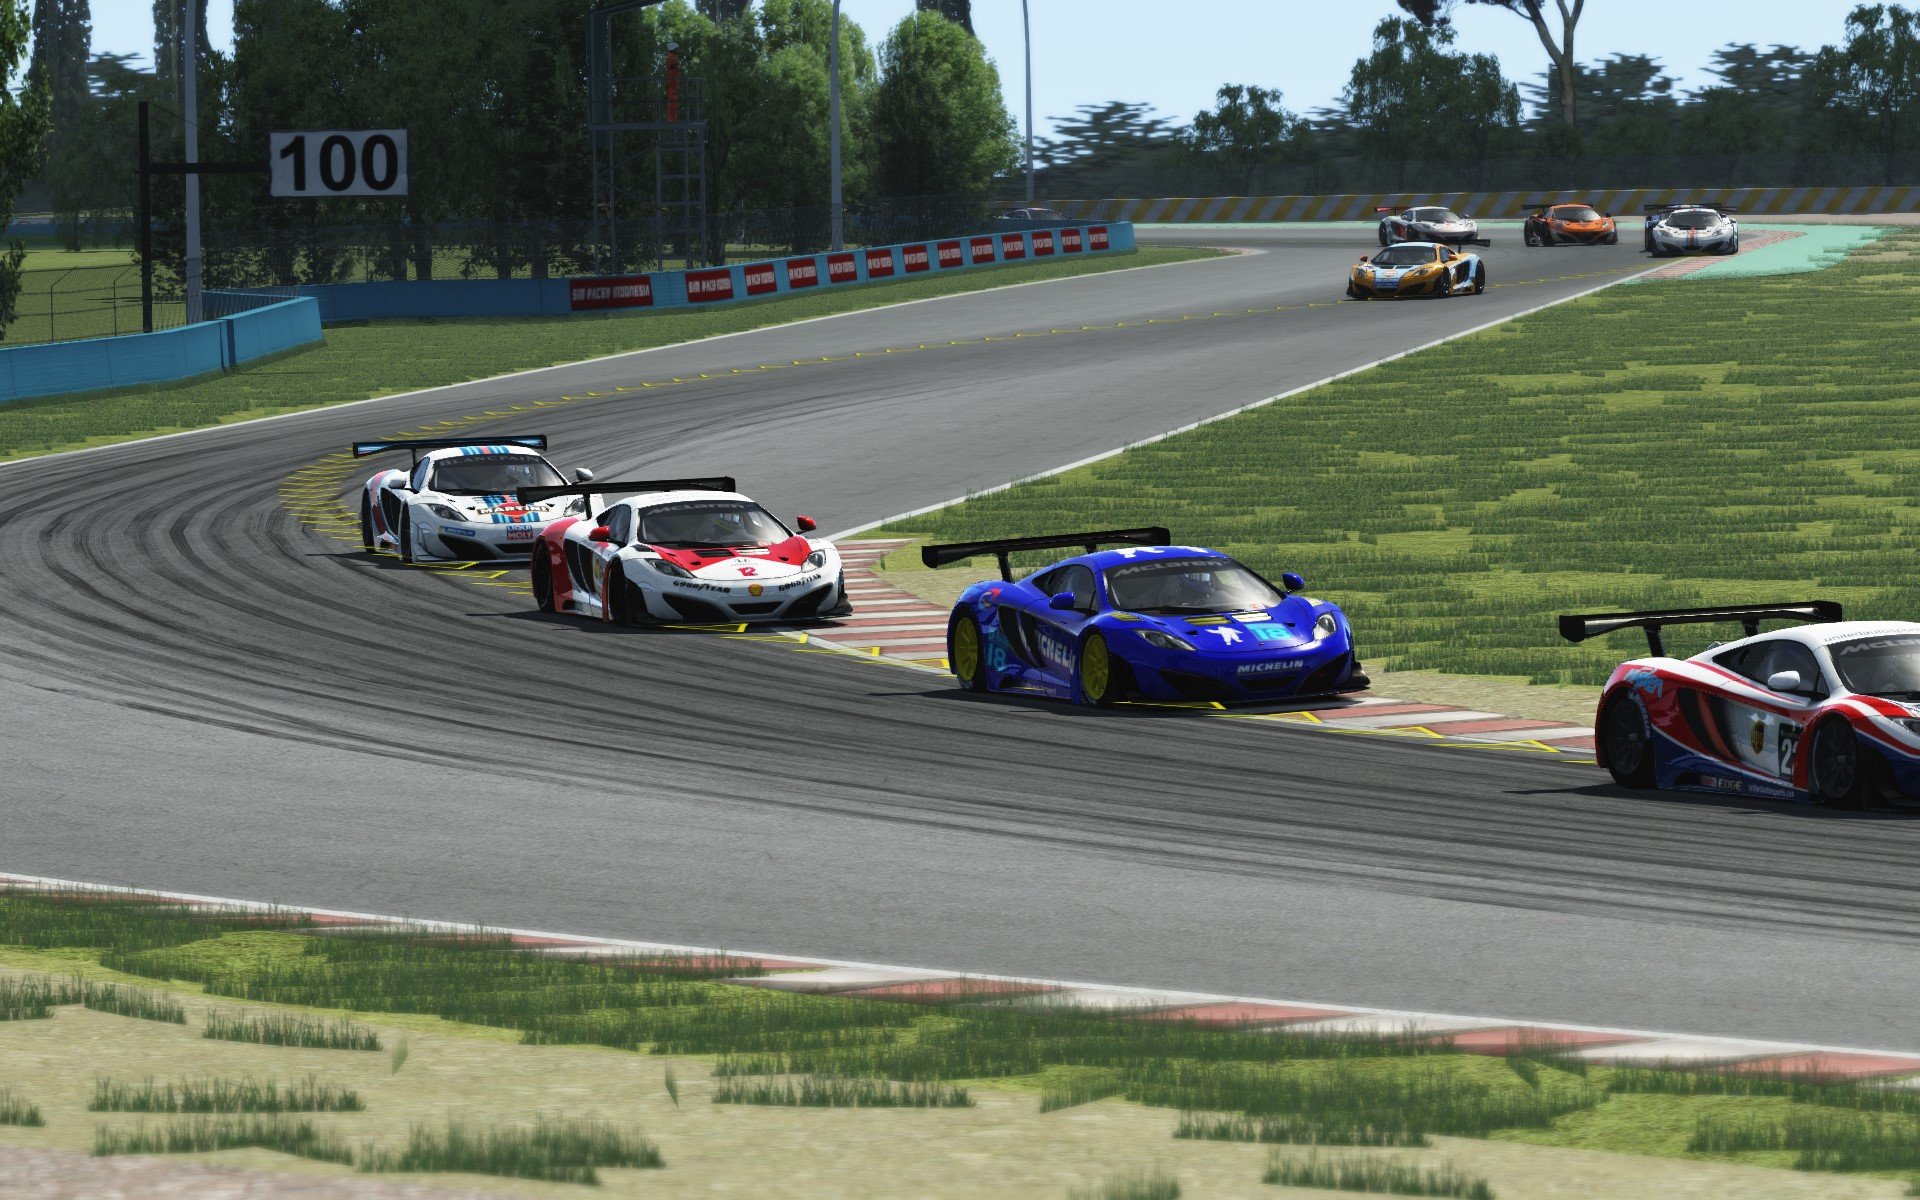 Screenshot_mclaren_mp412c_gt3_sentul_circuit_30-7-115-12-41-24.jpg